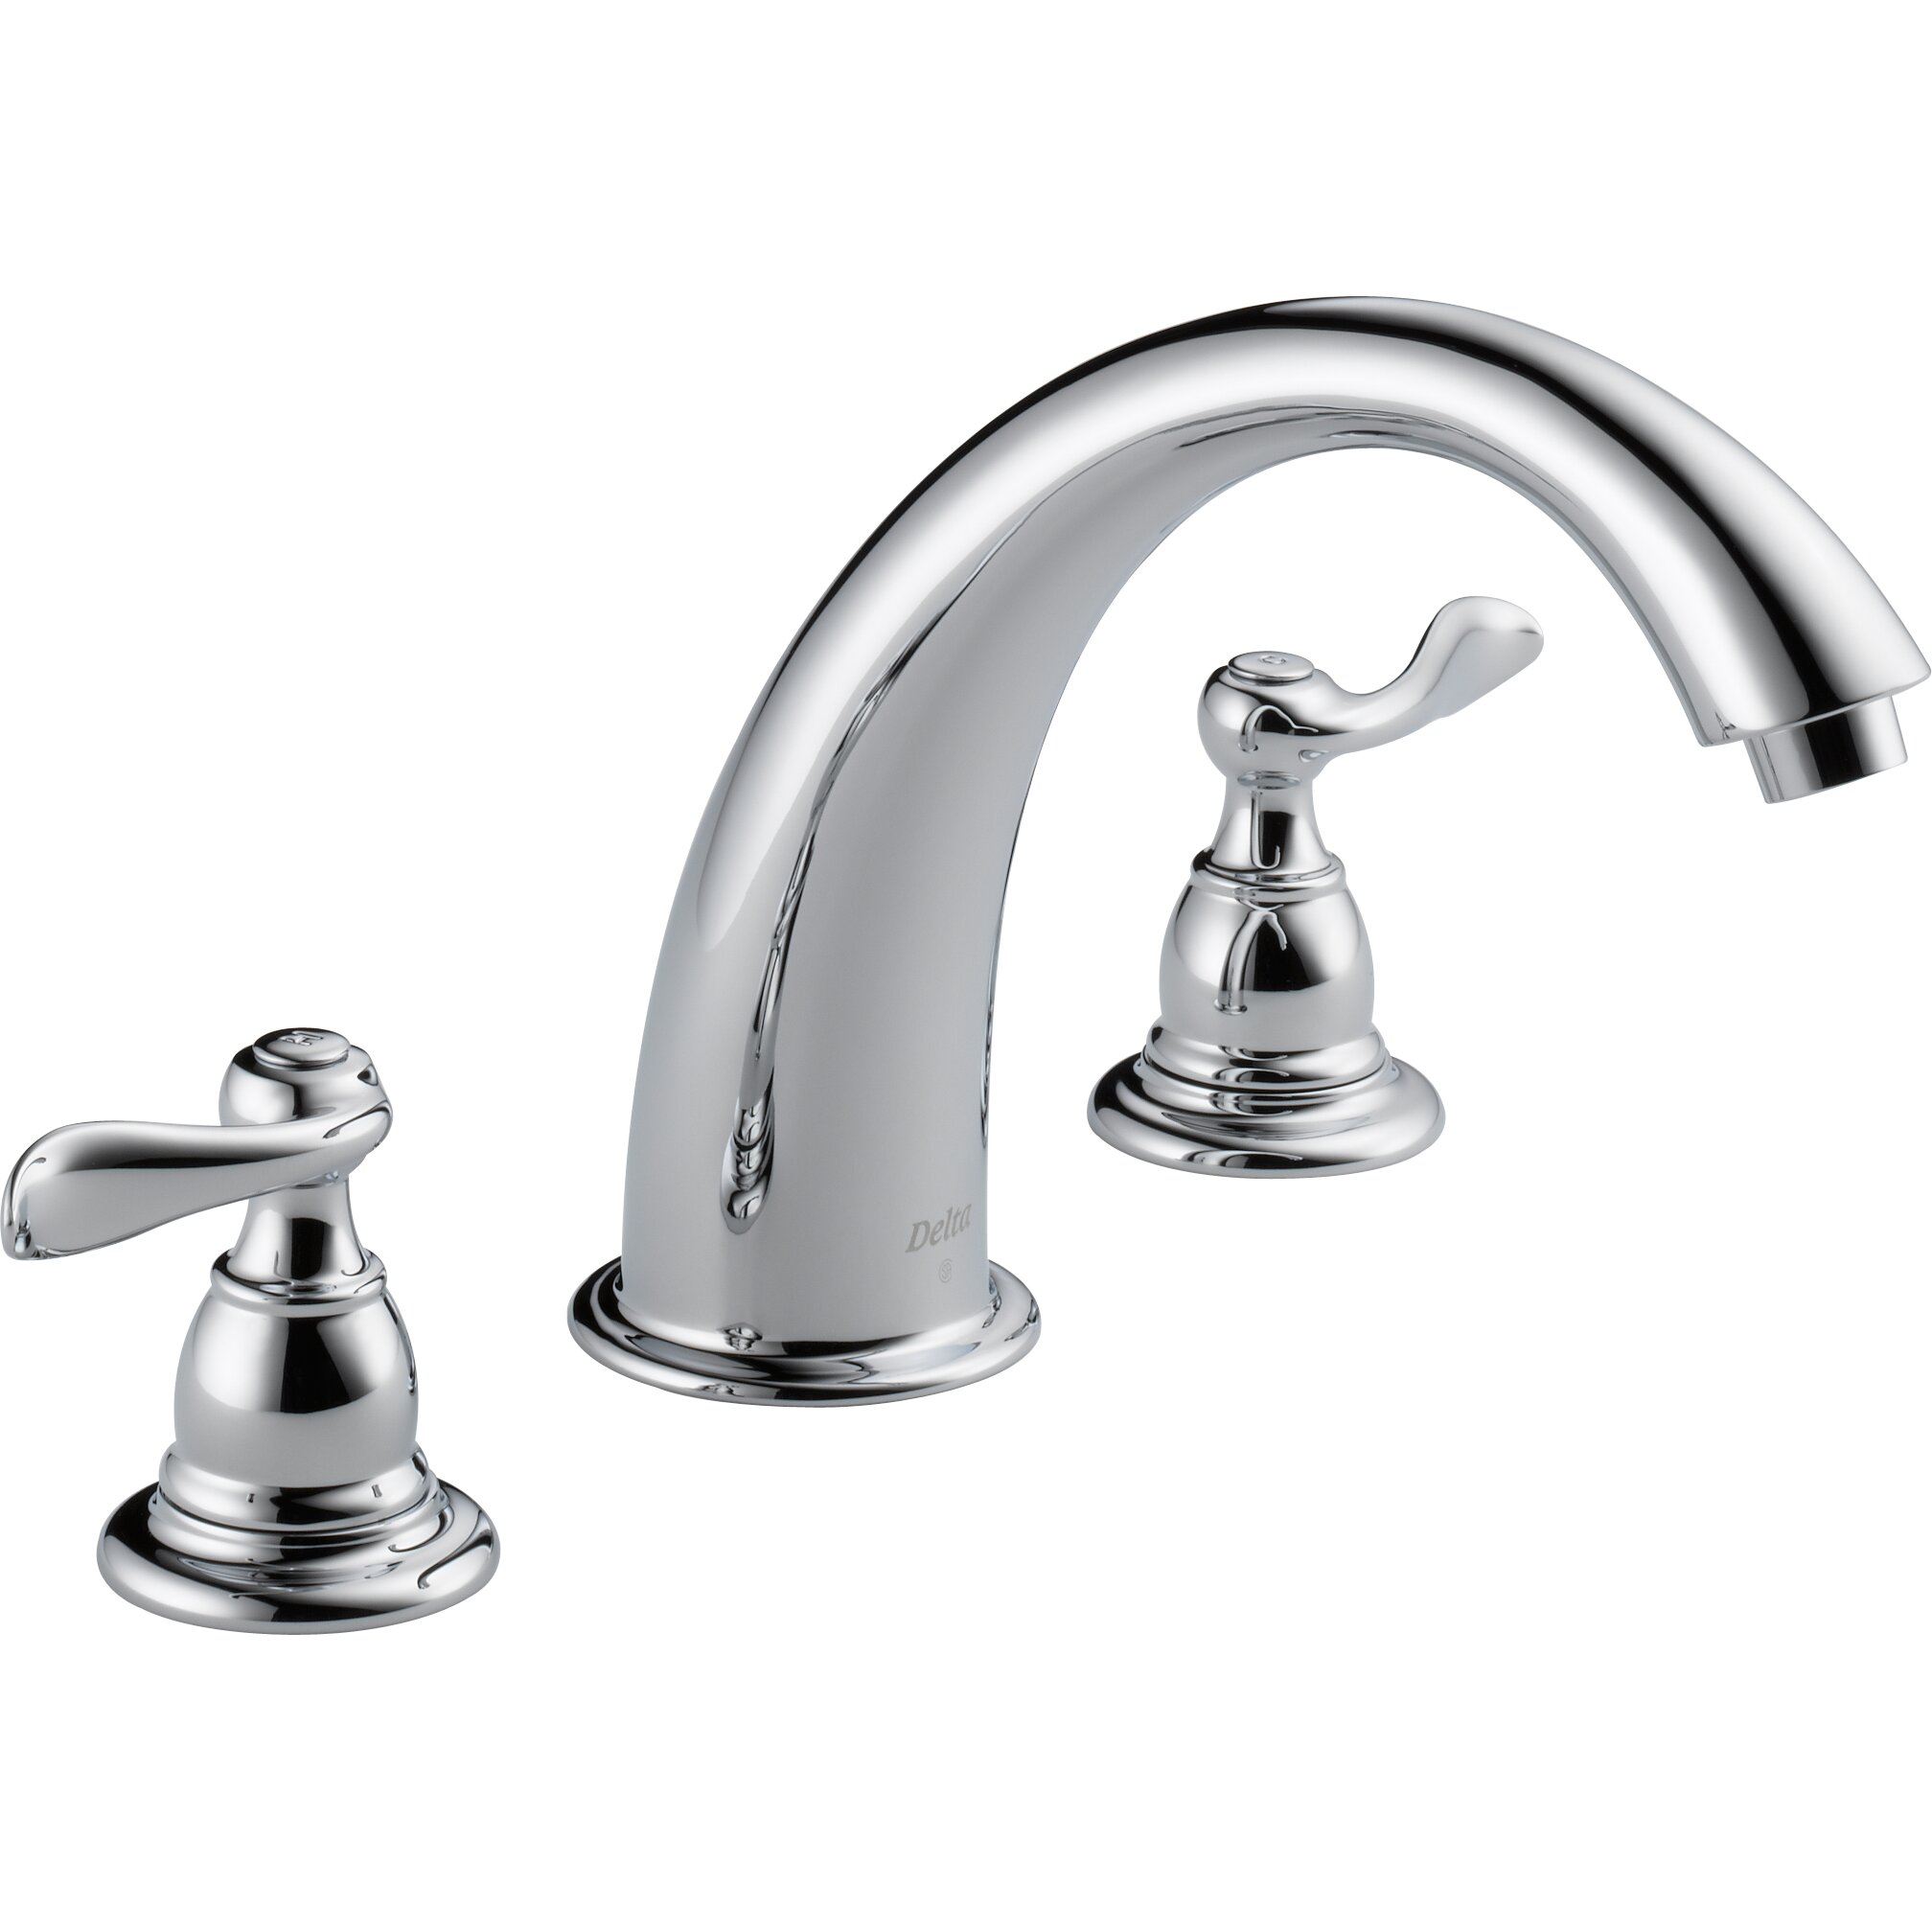 Types of outdoor faucets - Windemere Double Handle Deck Mount Roman Tub Faucet Trim